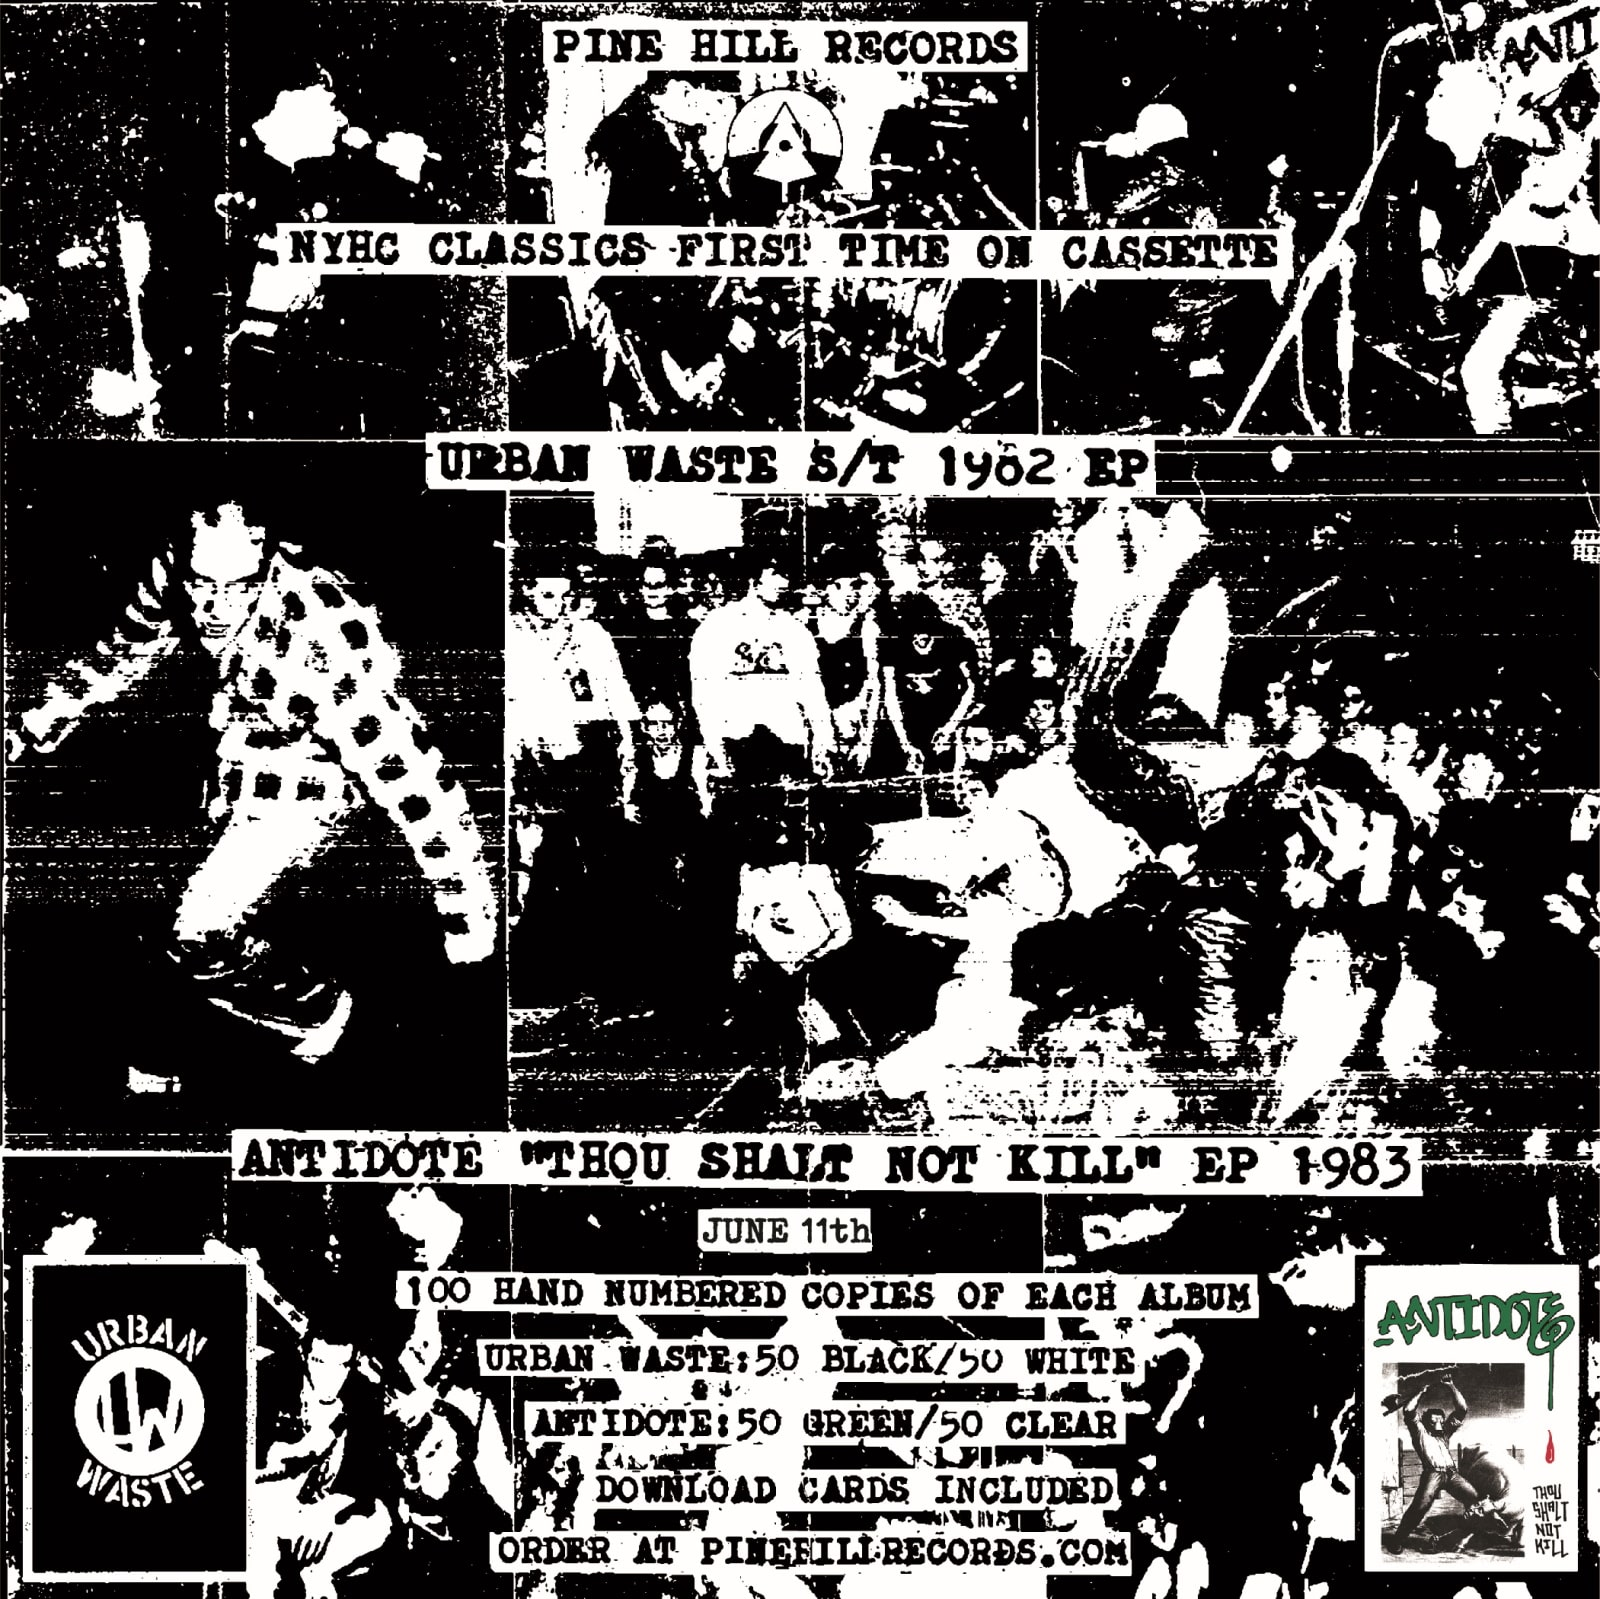 Pine Hill Records NYHC